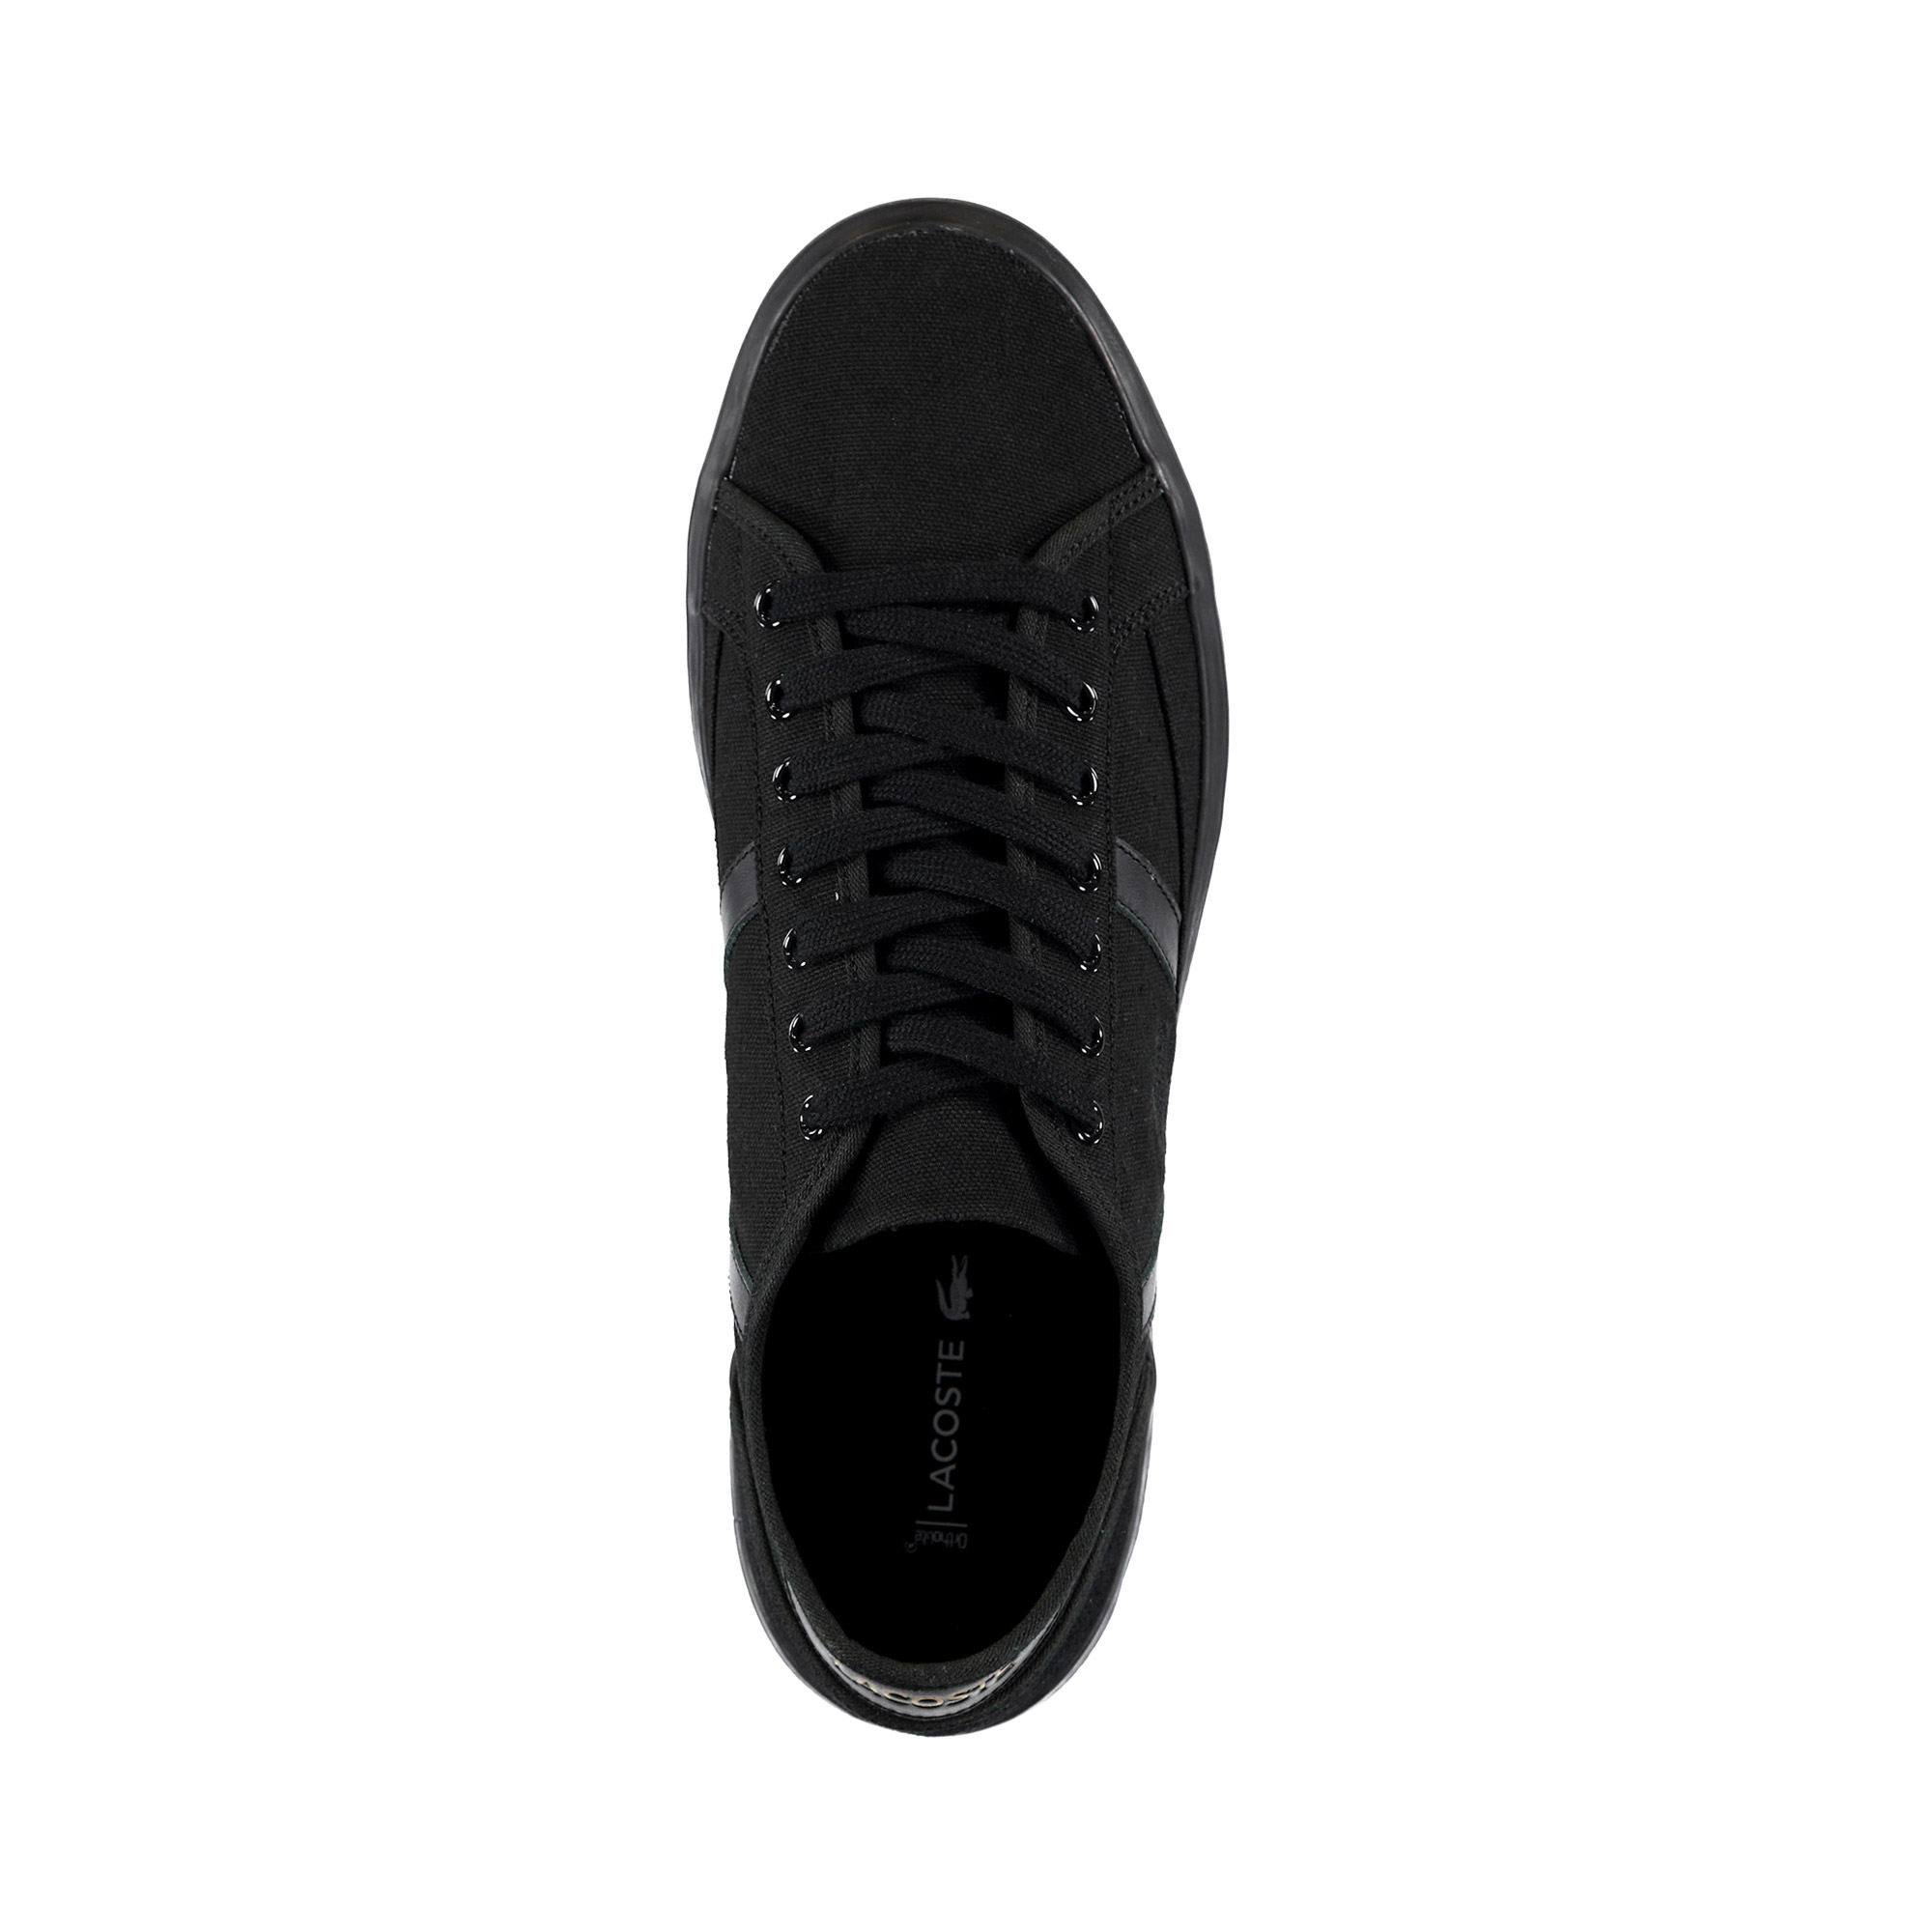 Lacoste Sideline 119 1 Men's Shoes